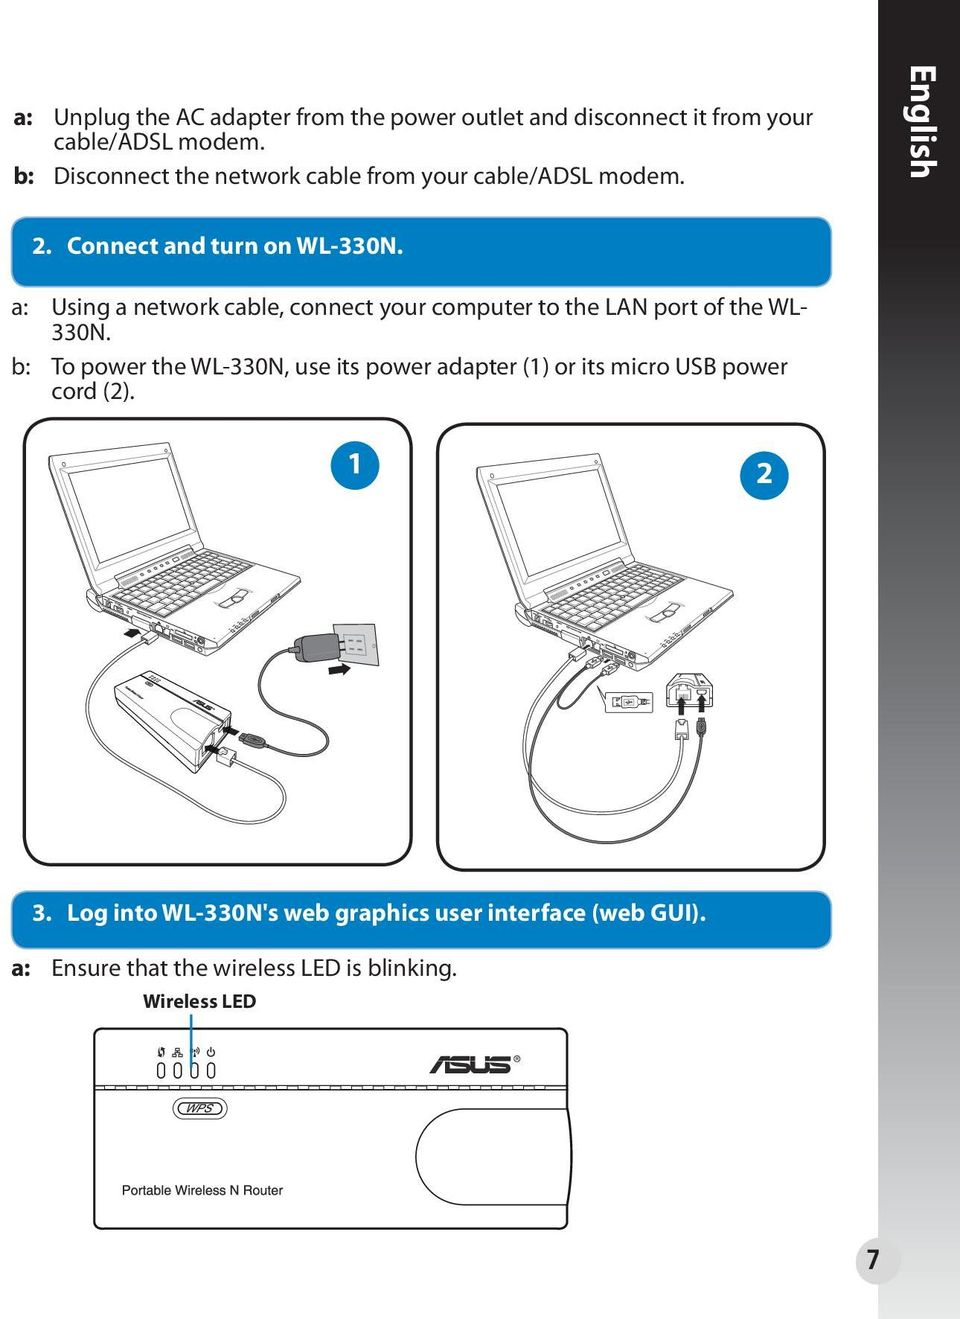 a: Using a network cable, connect your computer to the LAN port of the WL- 330N.